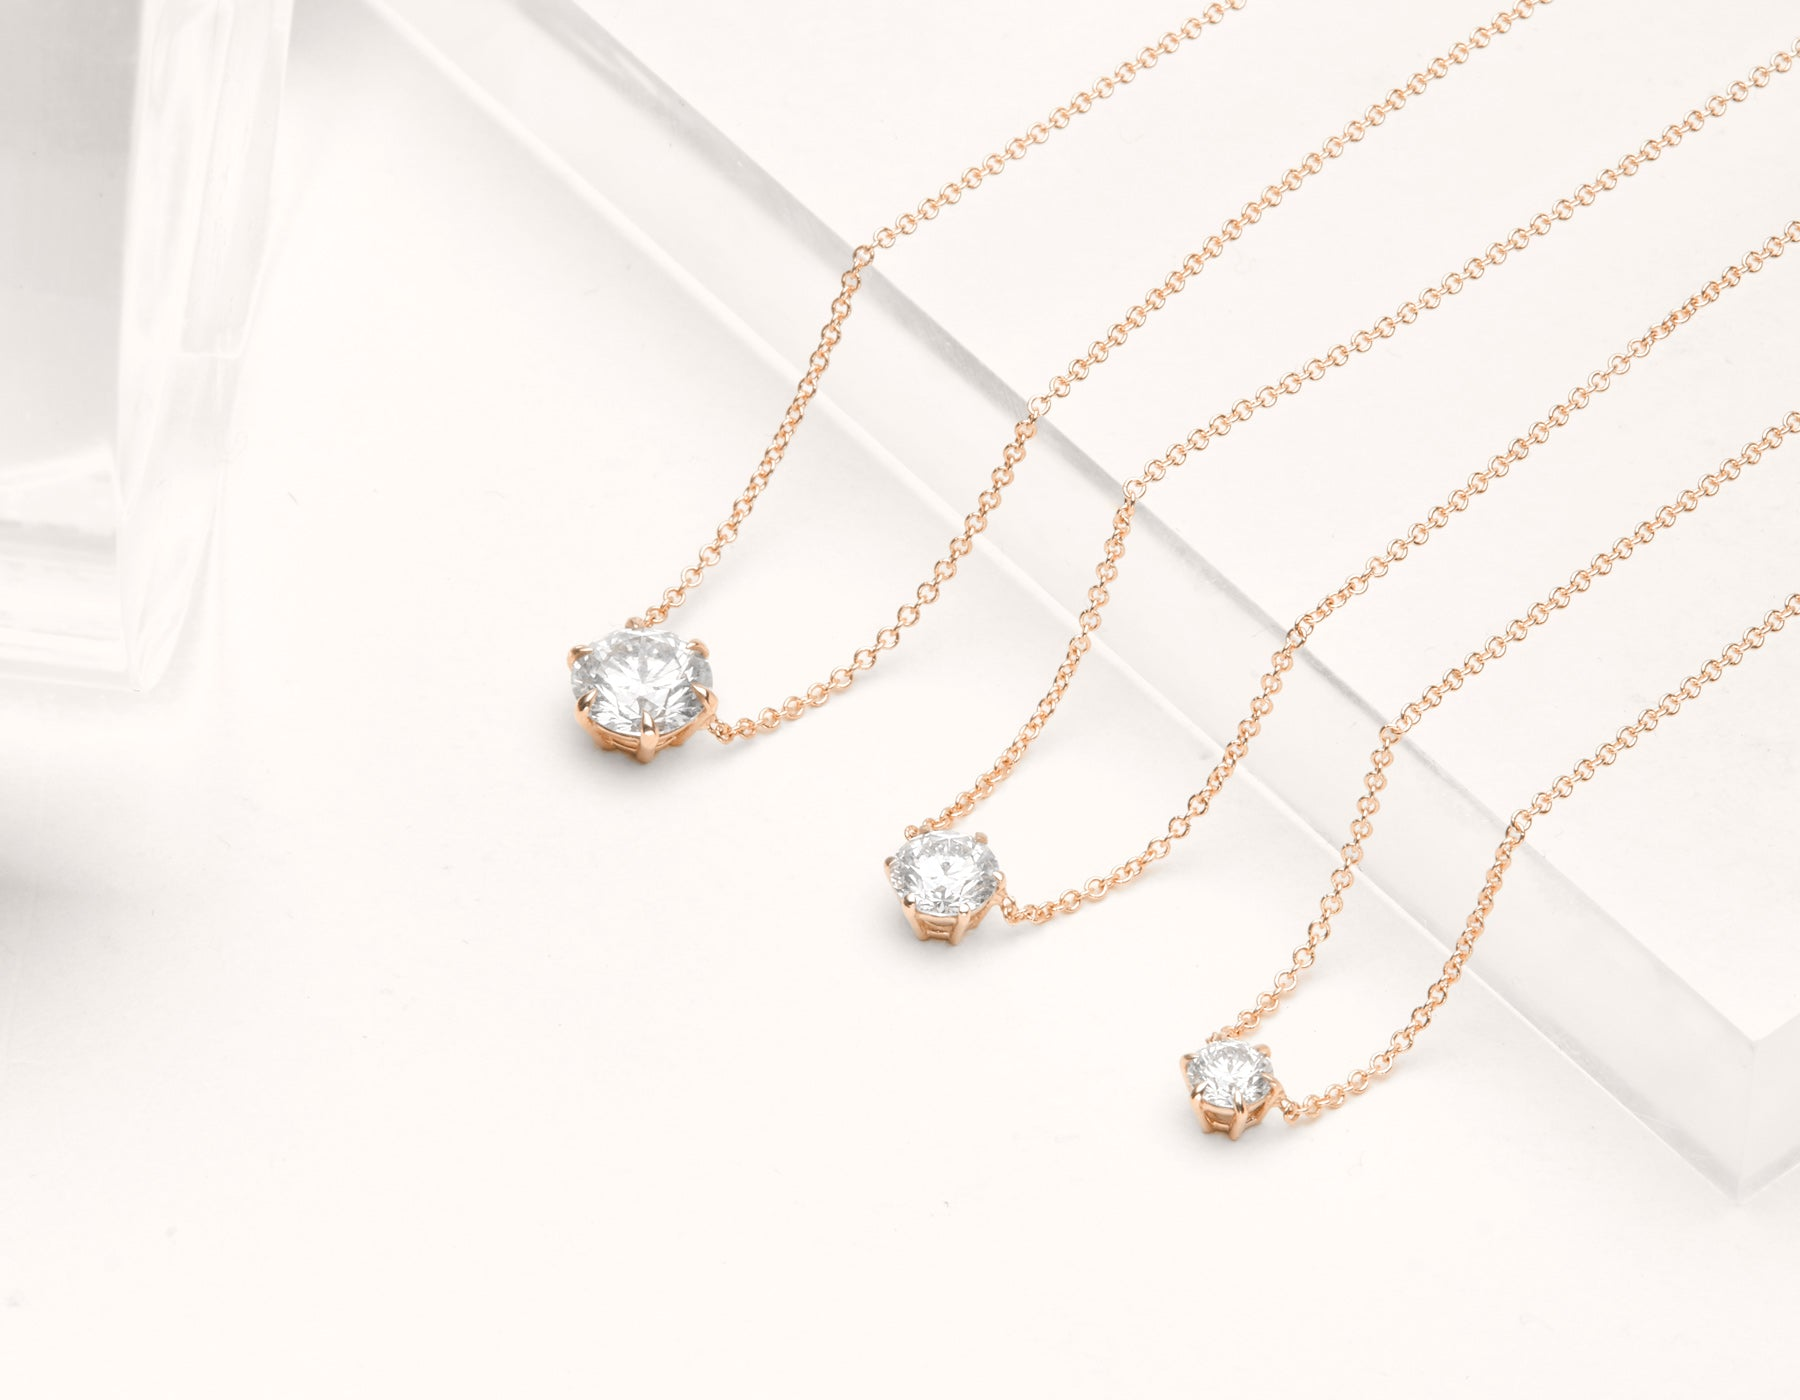 close up simple elegant Round Brilliant Diamond Necklace 6 prong set Vrai & Oro 18k solid rose gold, 18K Rose Gold